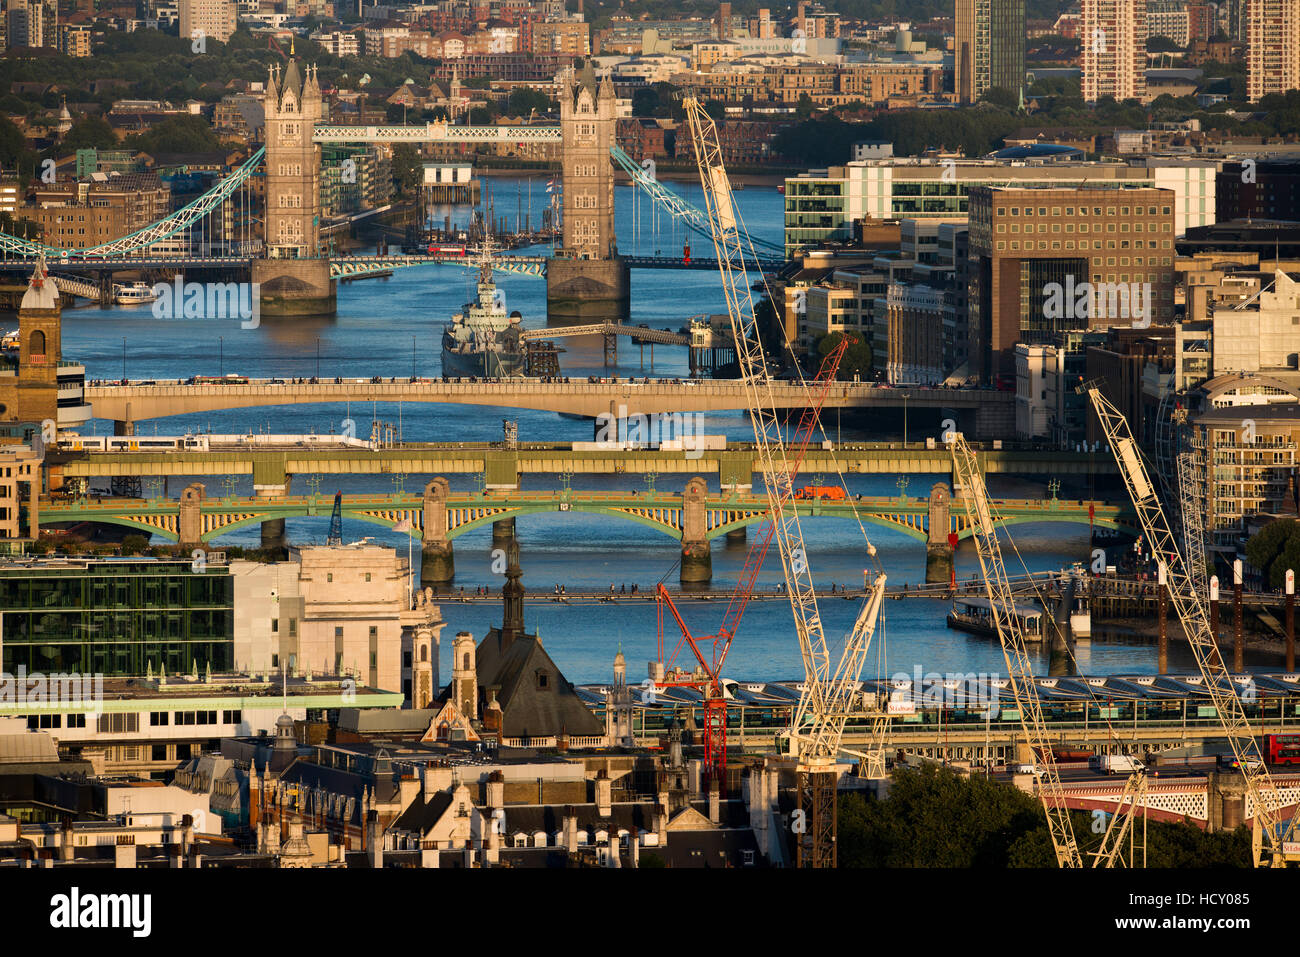 A view of the River Thames and Tower Bridge from the top of Centre Point tower, London, UK - Stock Image